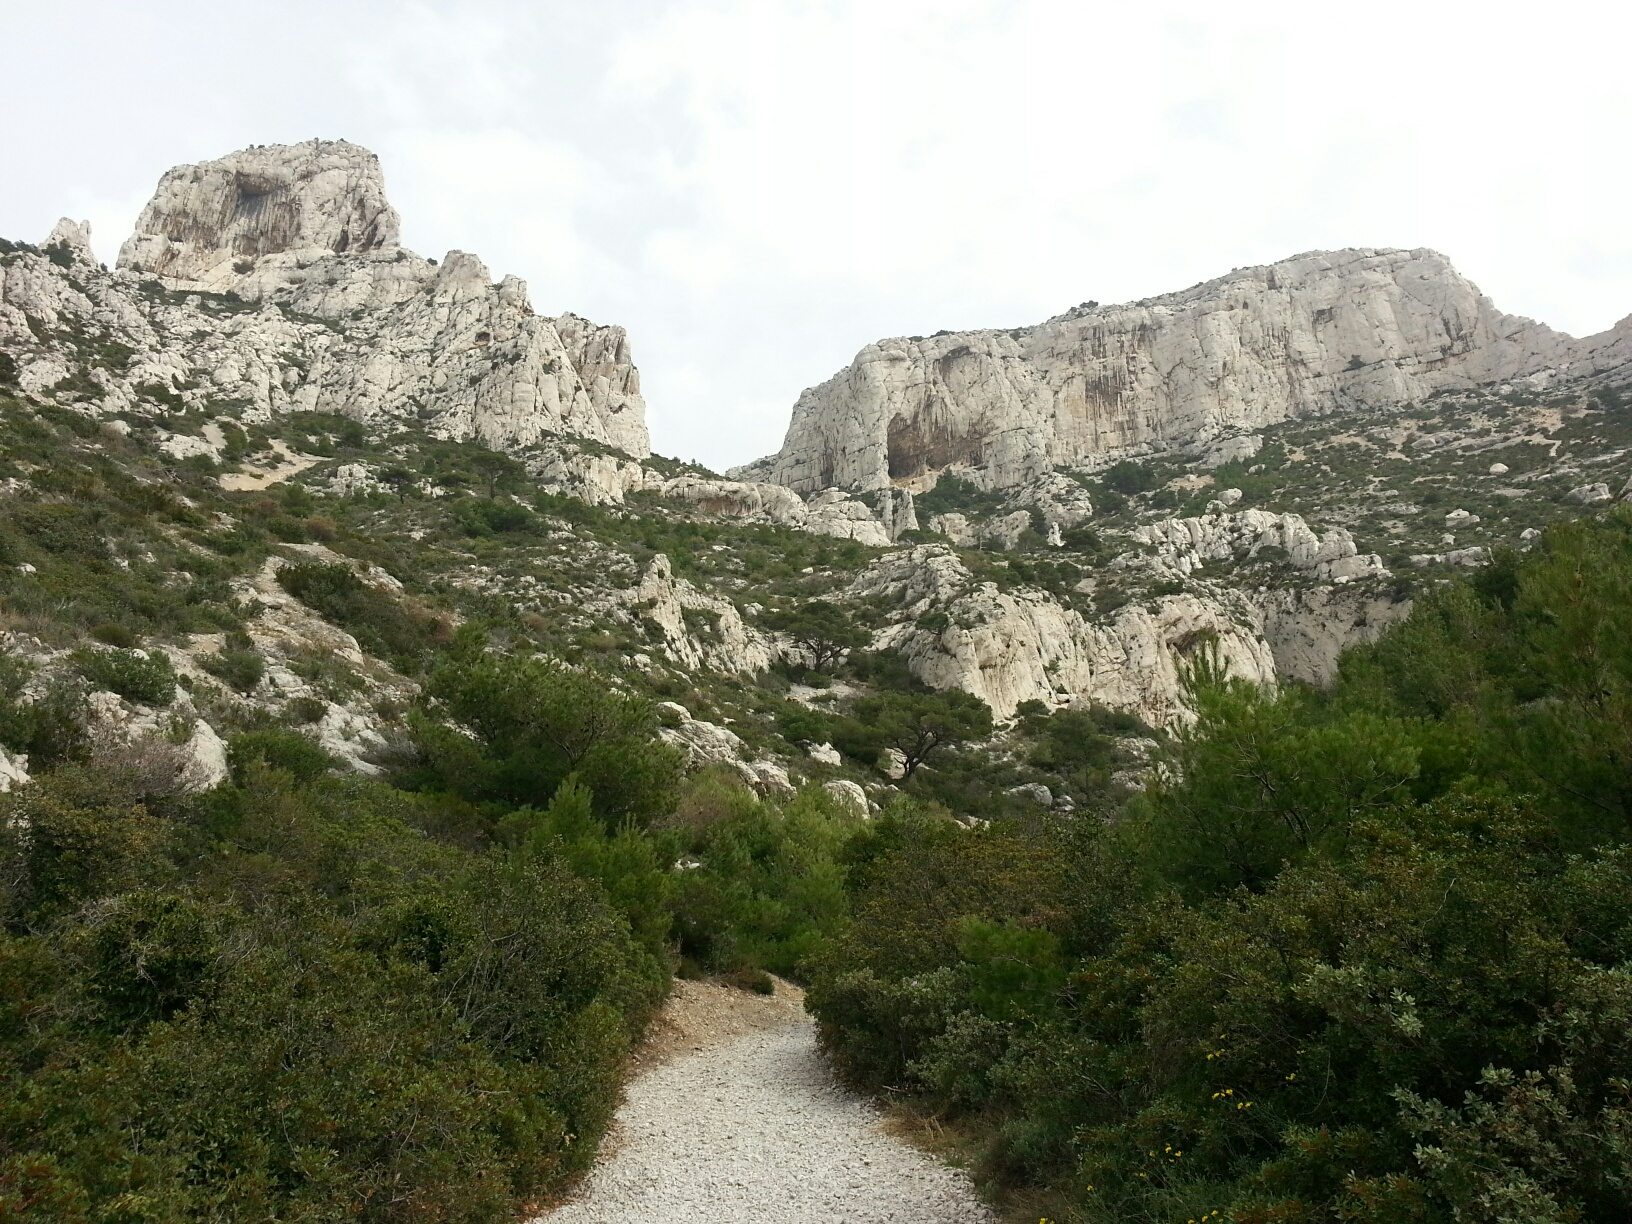 More Calanques hiking